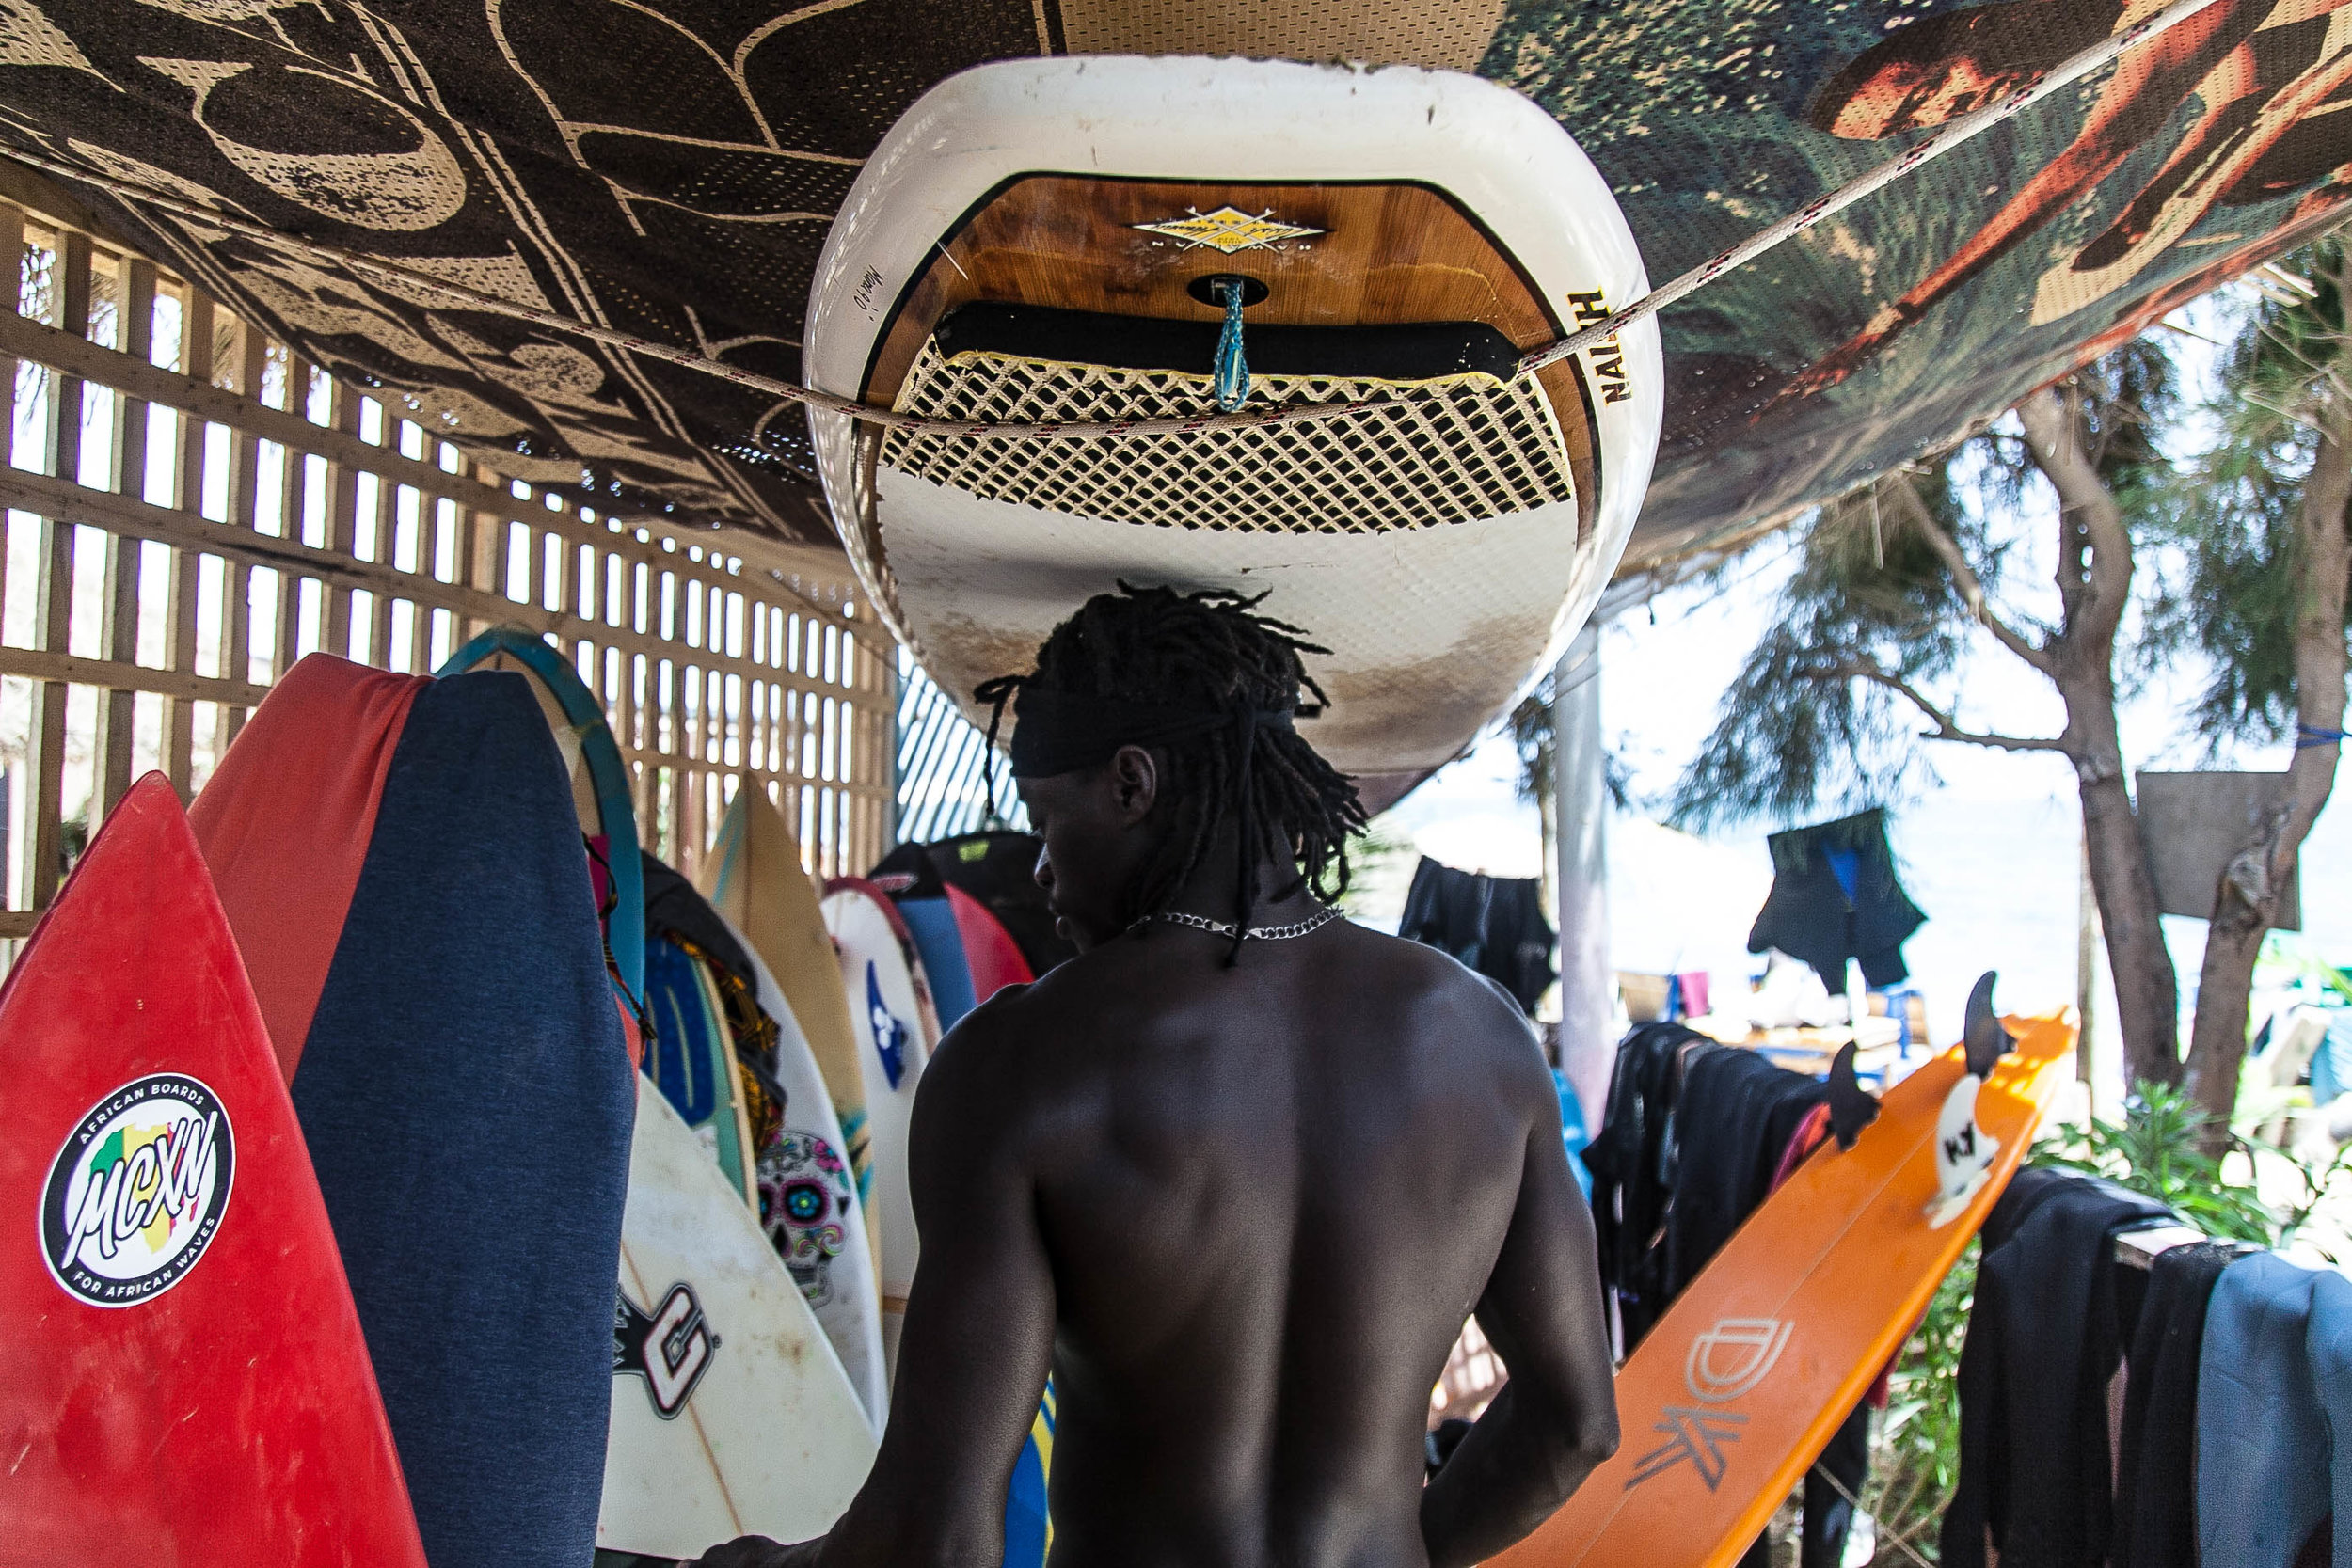 leelitumbe_spiritedpursuit_senegal_dakar_surf-63.jpg